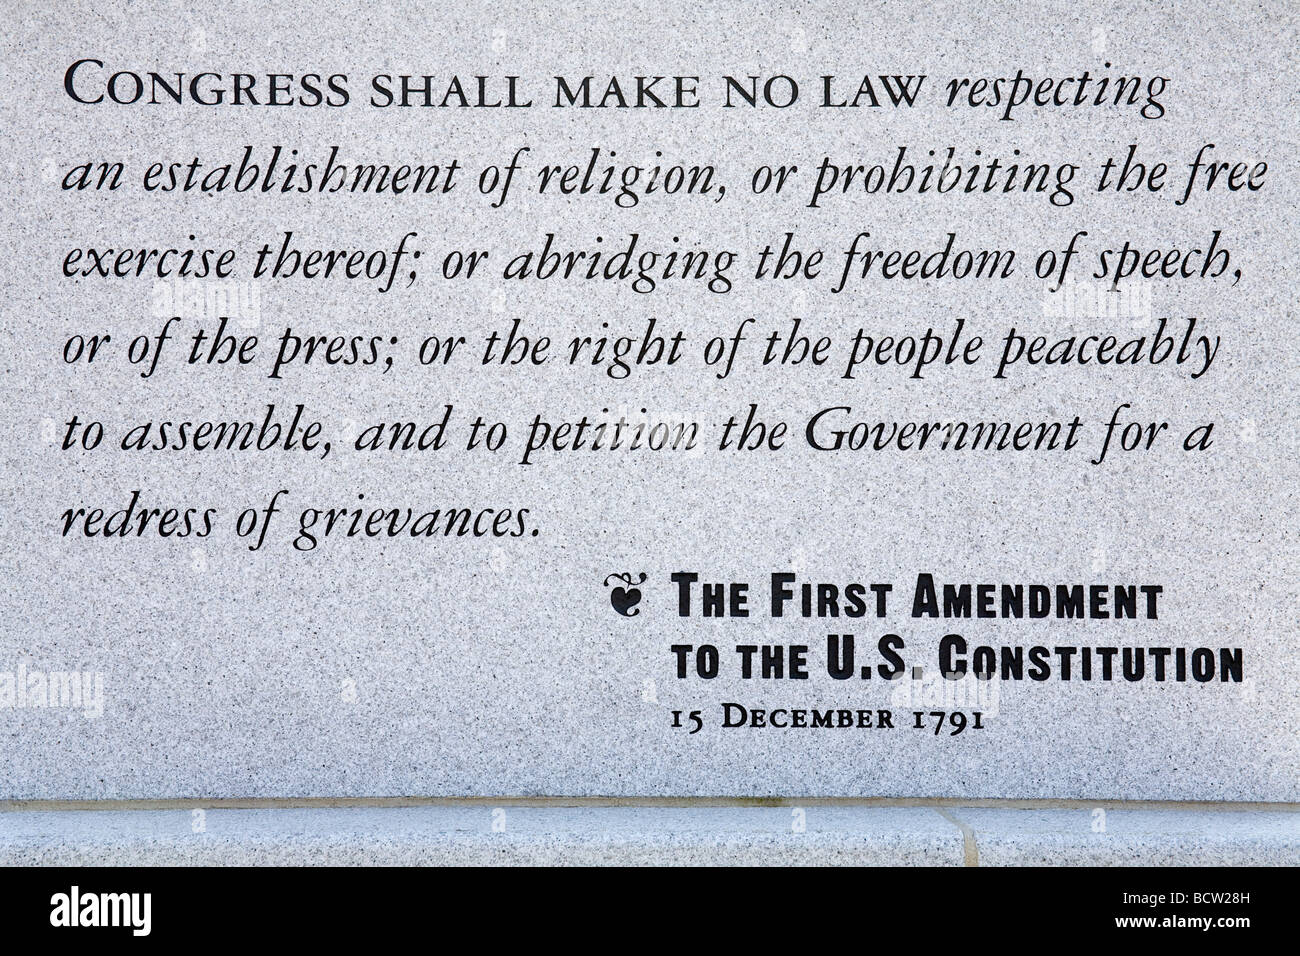 an analysis of first amendment of united states The second amendment (amendment ii) to the united states constitution protects the right of the people to keep and bear arms and was adopted on december 15, 1791 as part of the bill of rights.